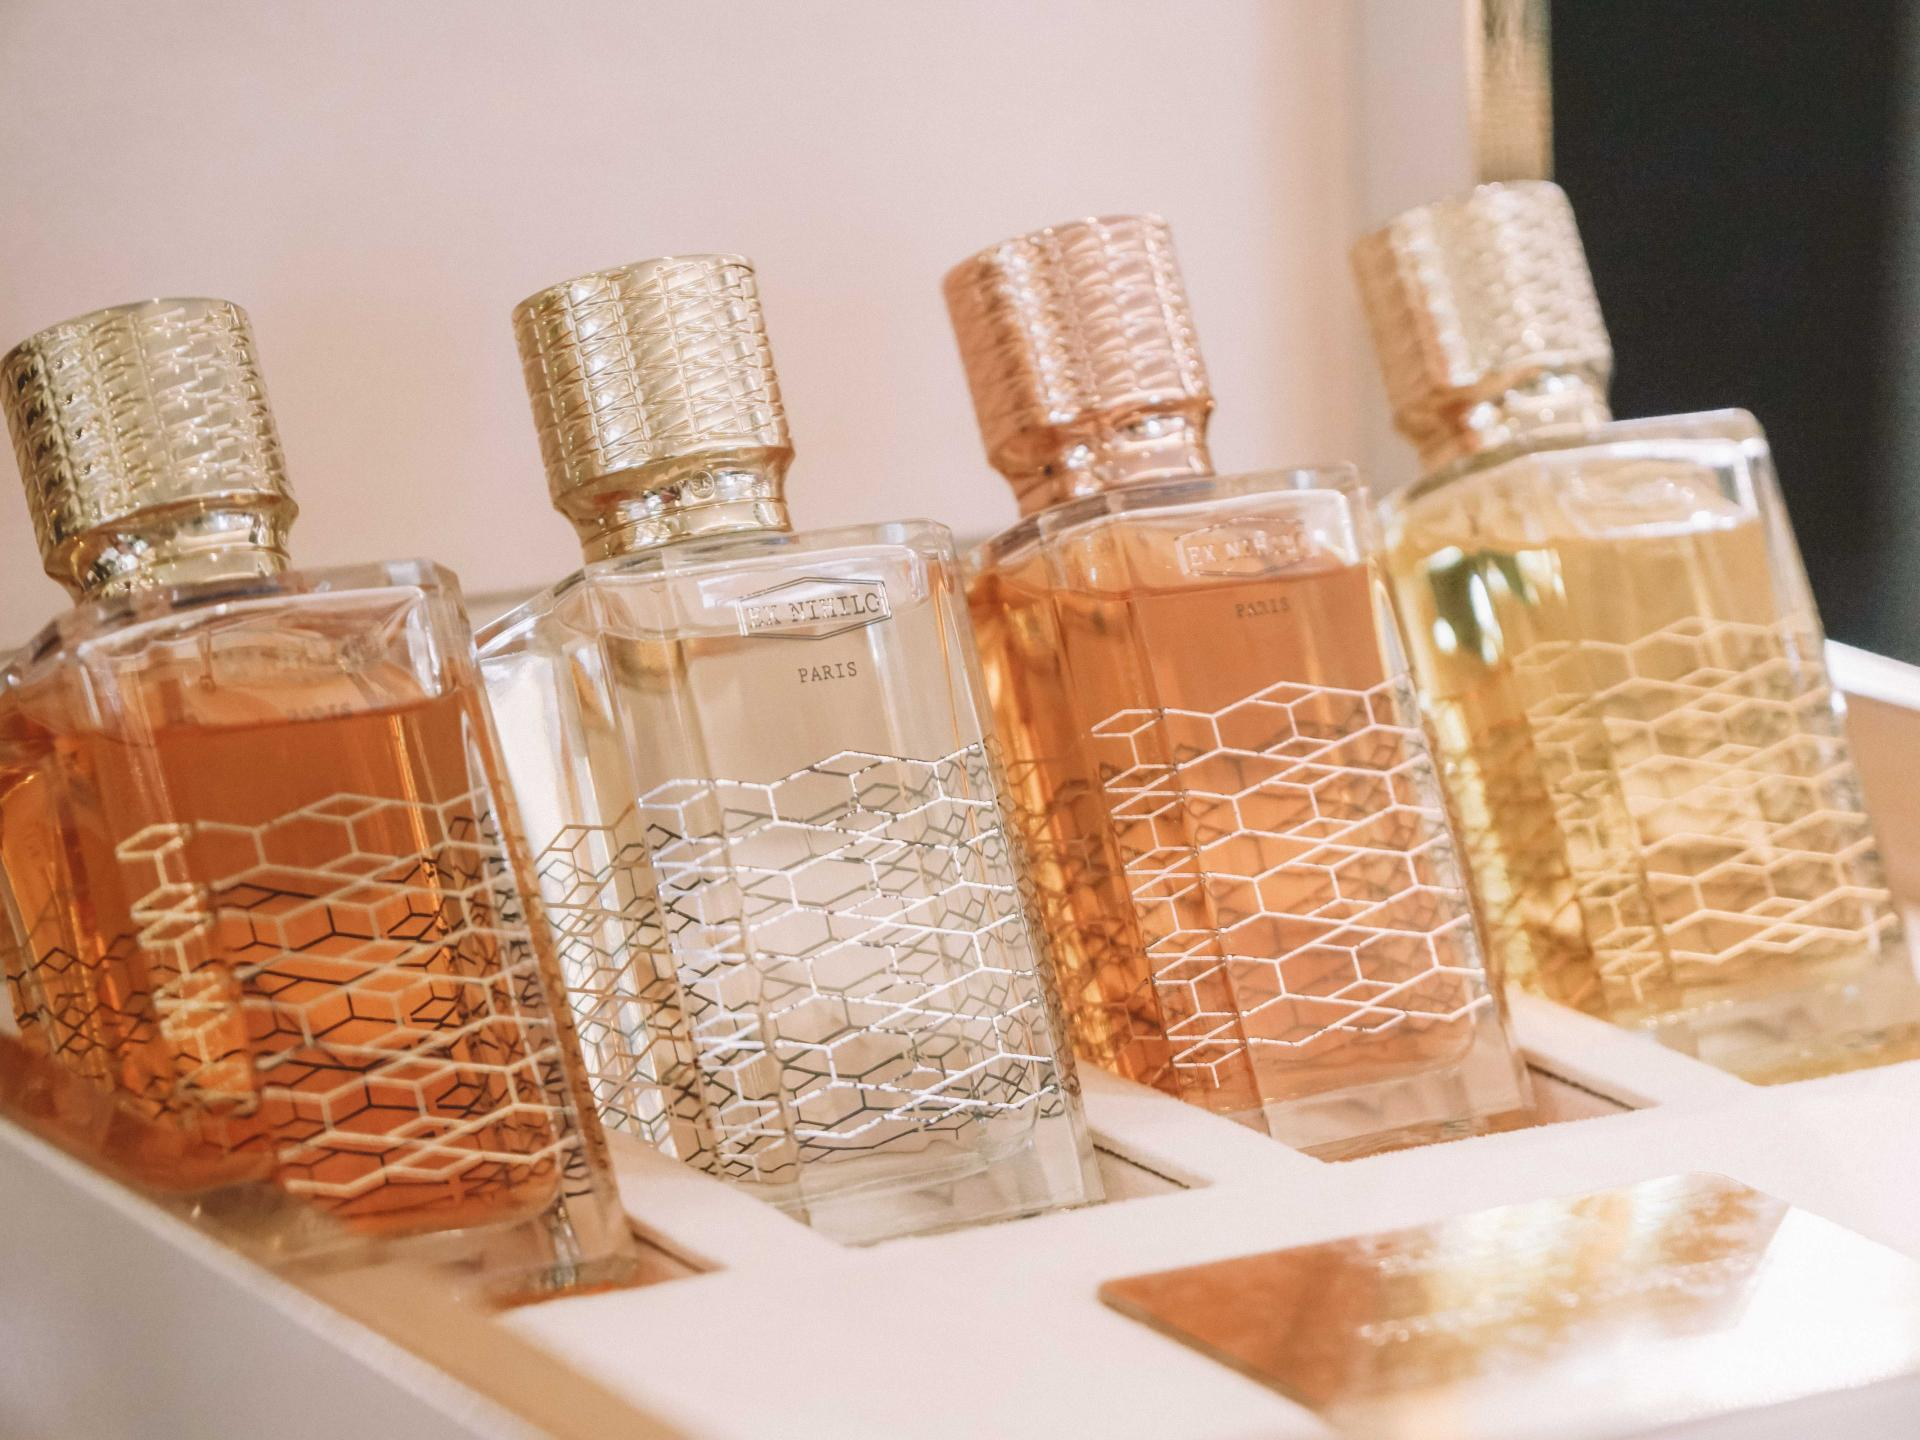 where to customize your own perfume in paris